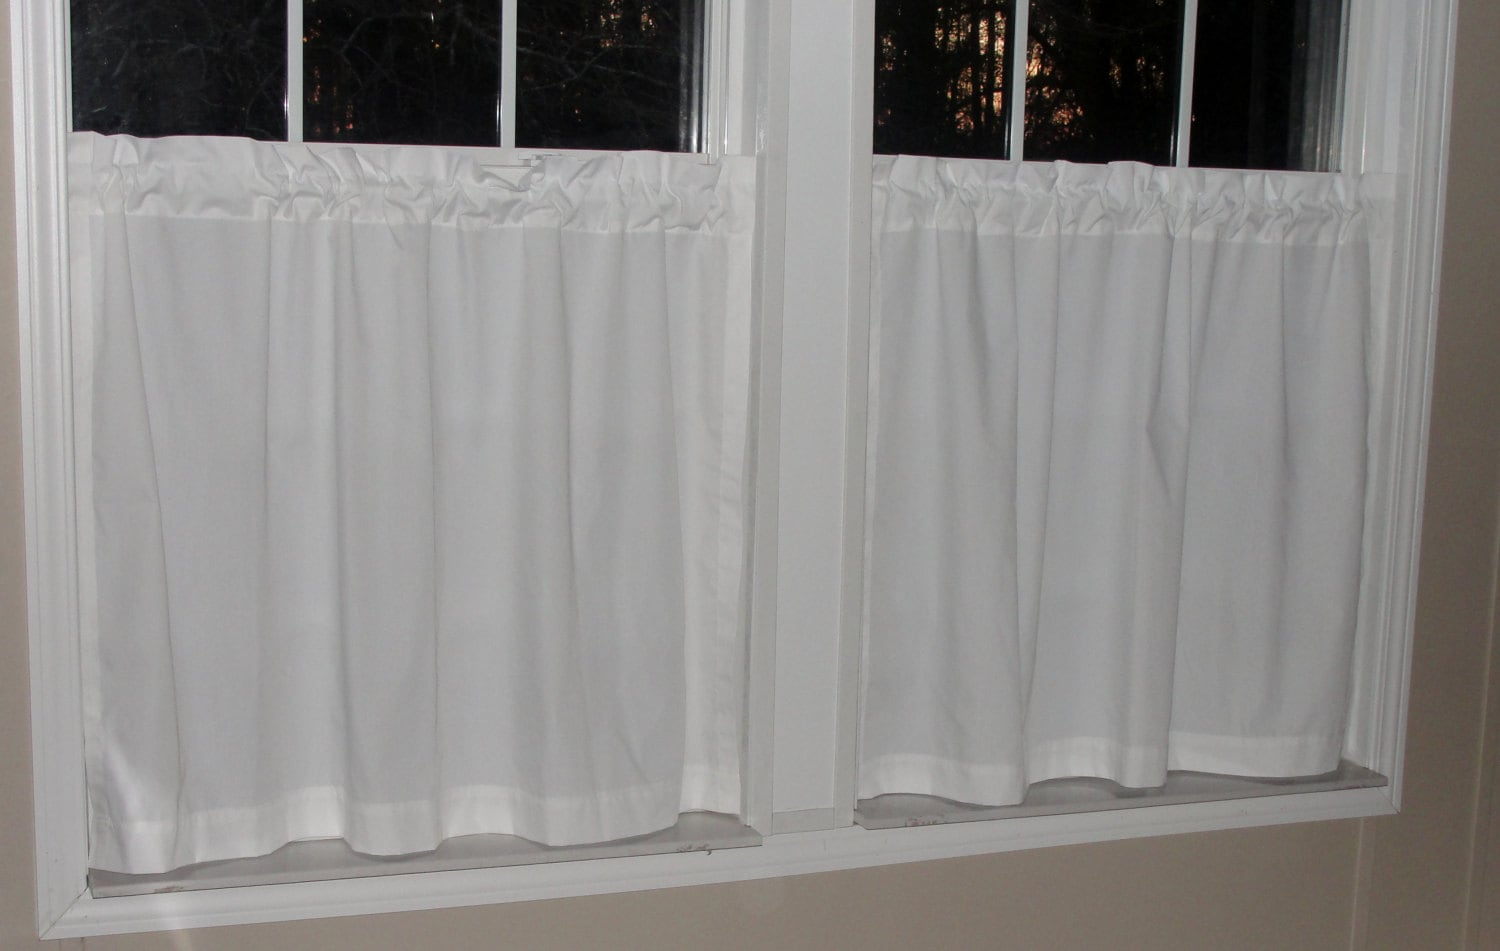 Cafe curtains for bathroom - Kaufman Premium Kona All White Cafe Curtains 80 Wide X 30 Long